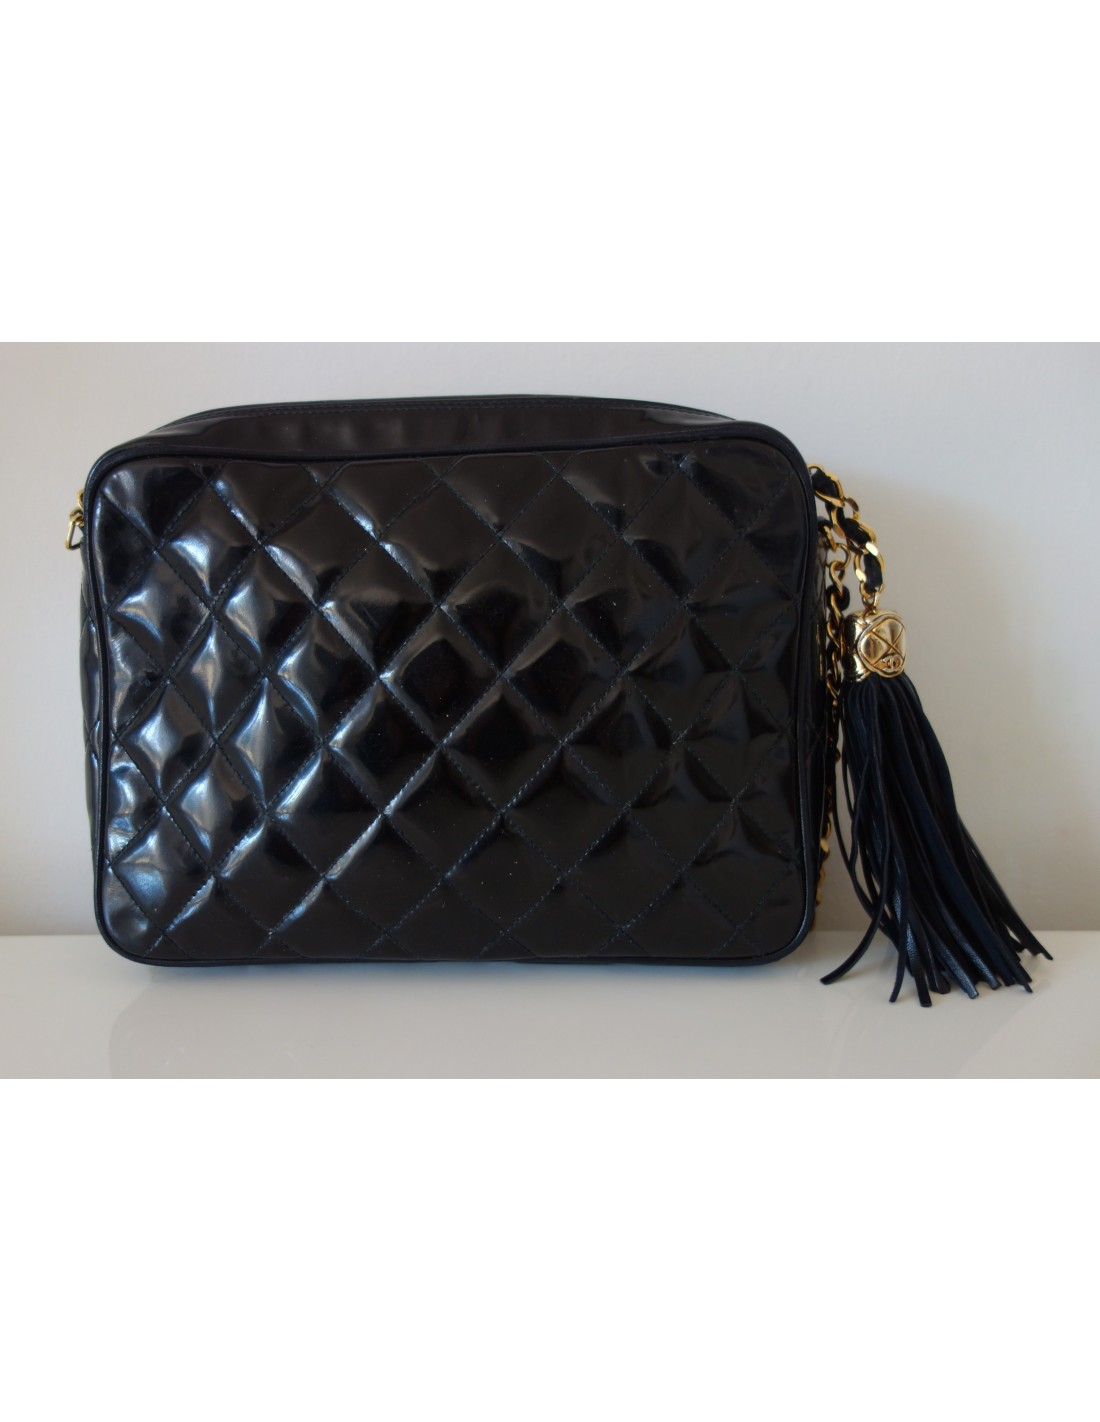 Sac chanel vintage pompon atoutluxe boutique for Sac chanel interieur